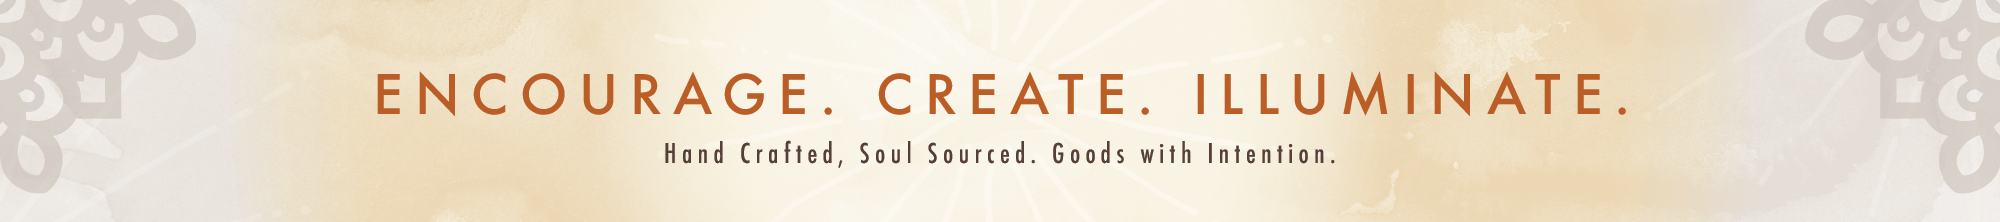 Encourage. Create. Illuminate. Hand crafted, soul sourced. Goods with Intention.